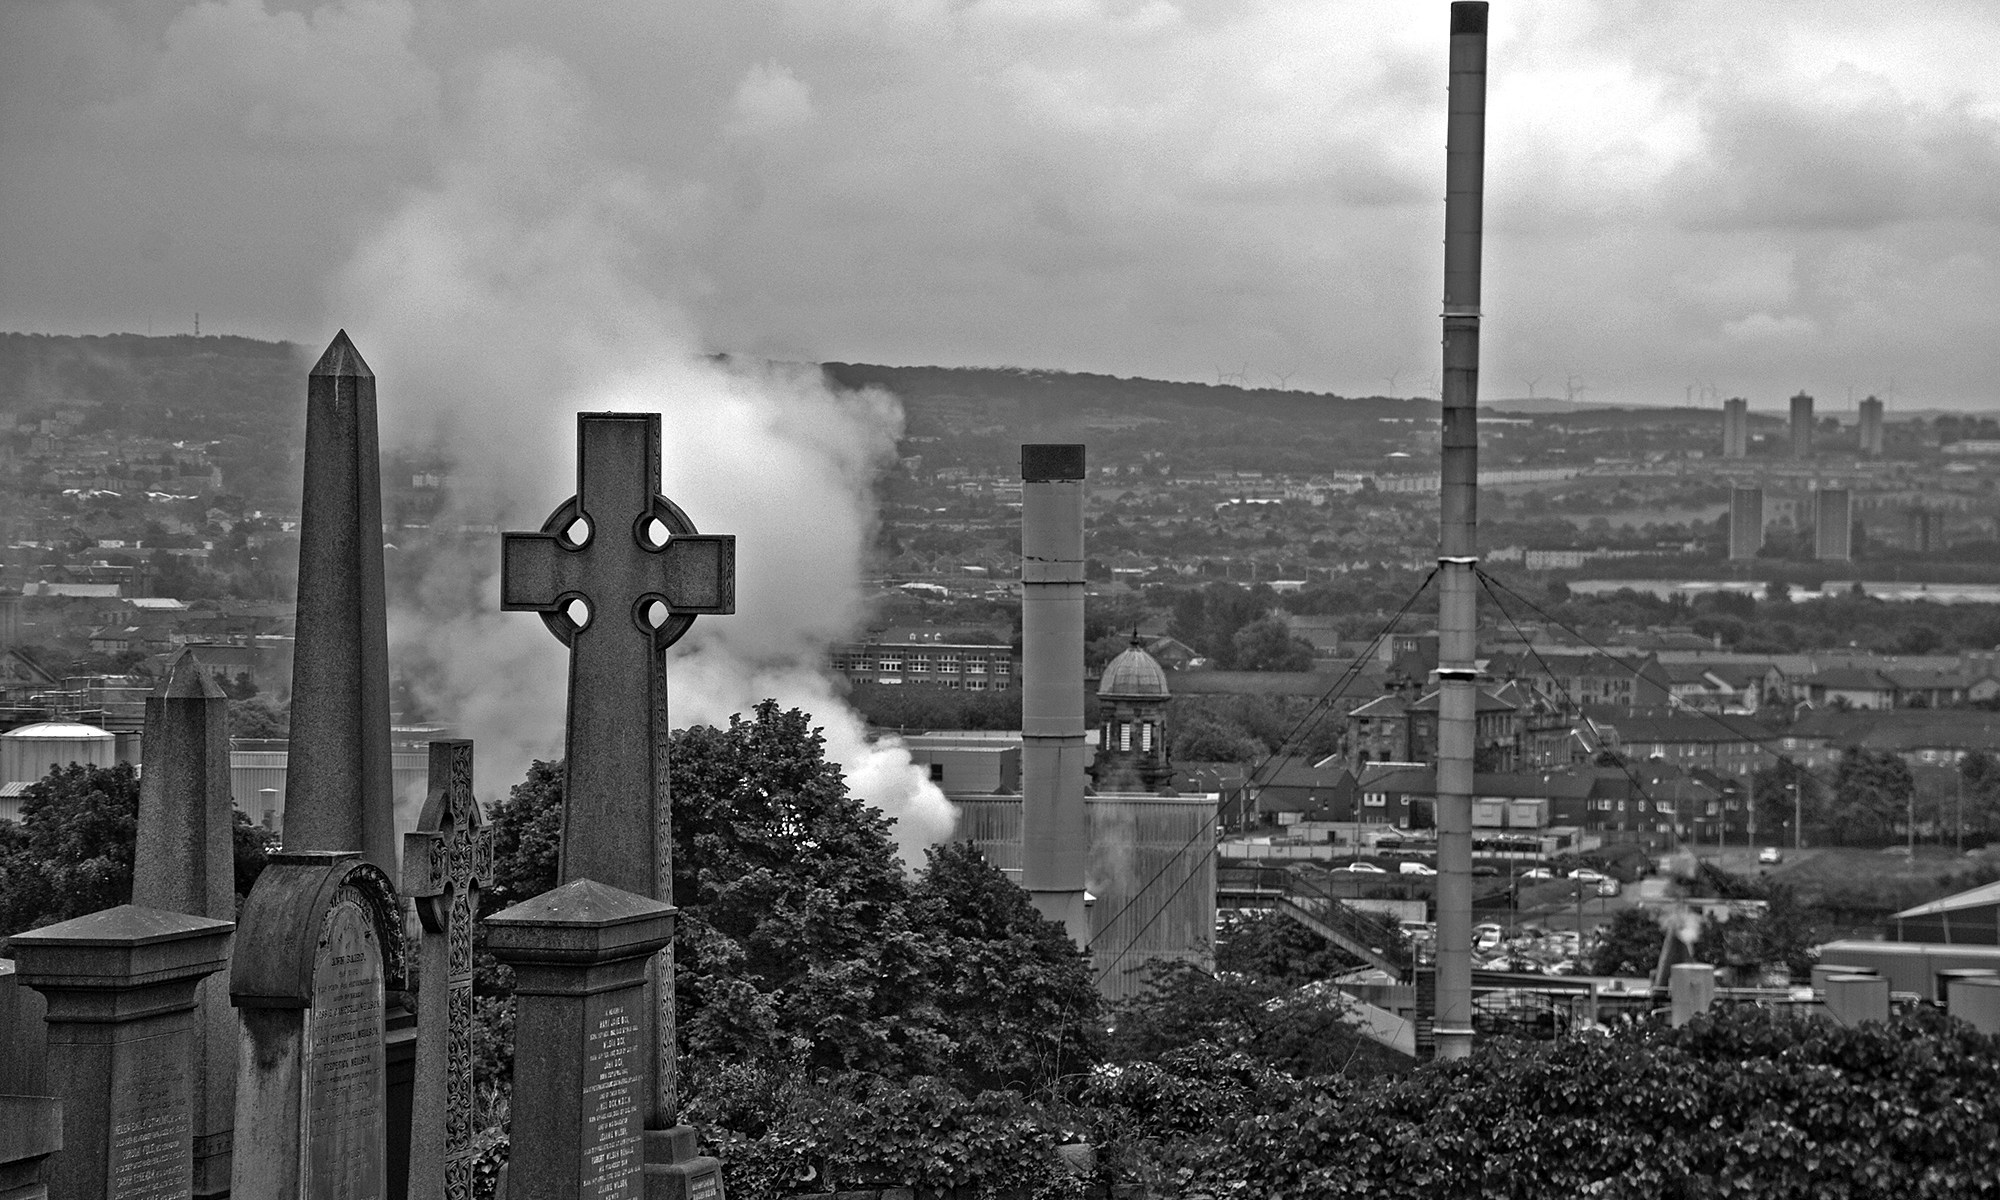 Glasgow Landscape from Necropolis